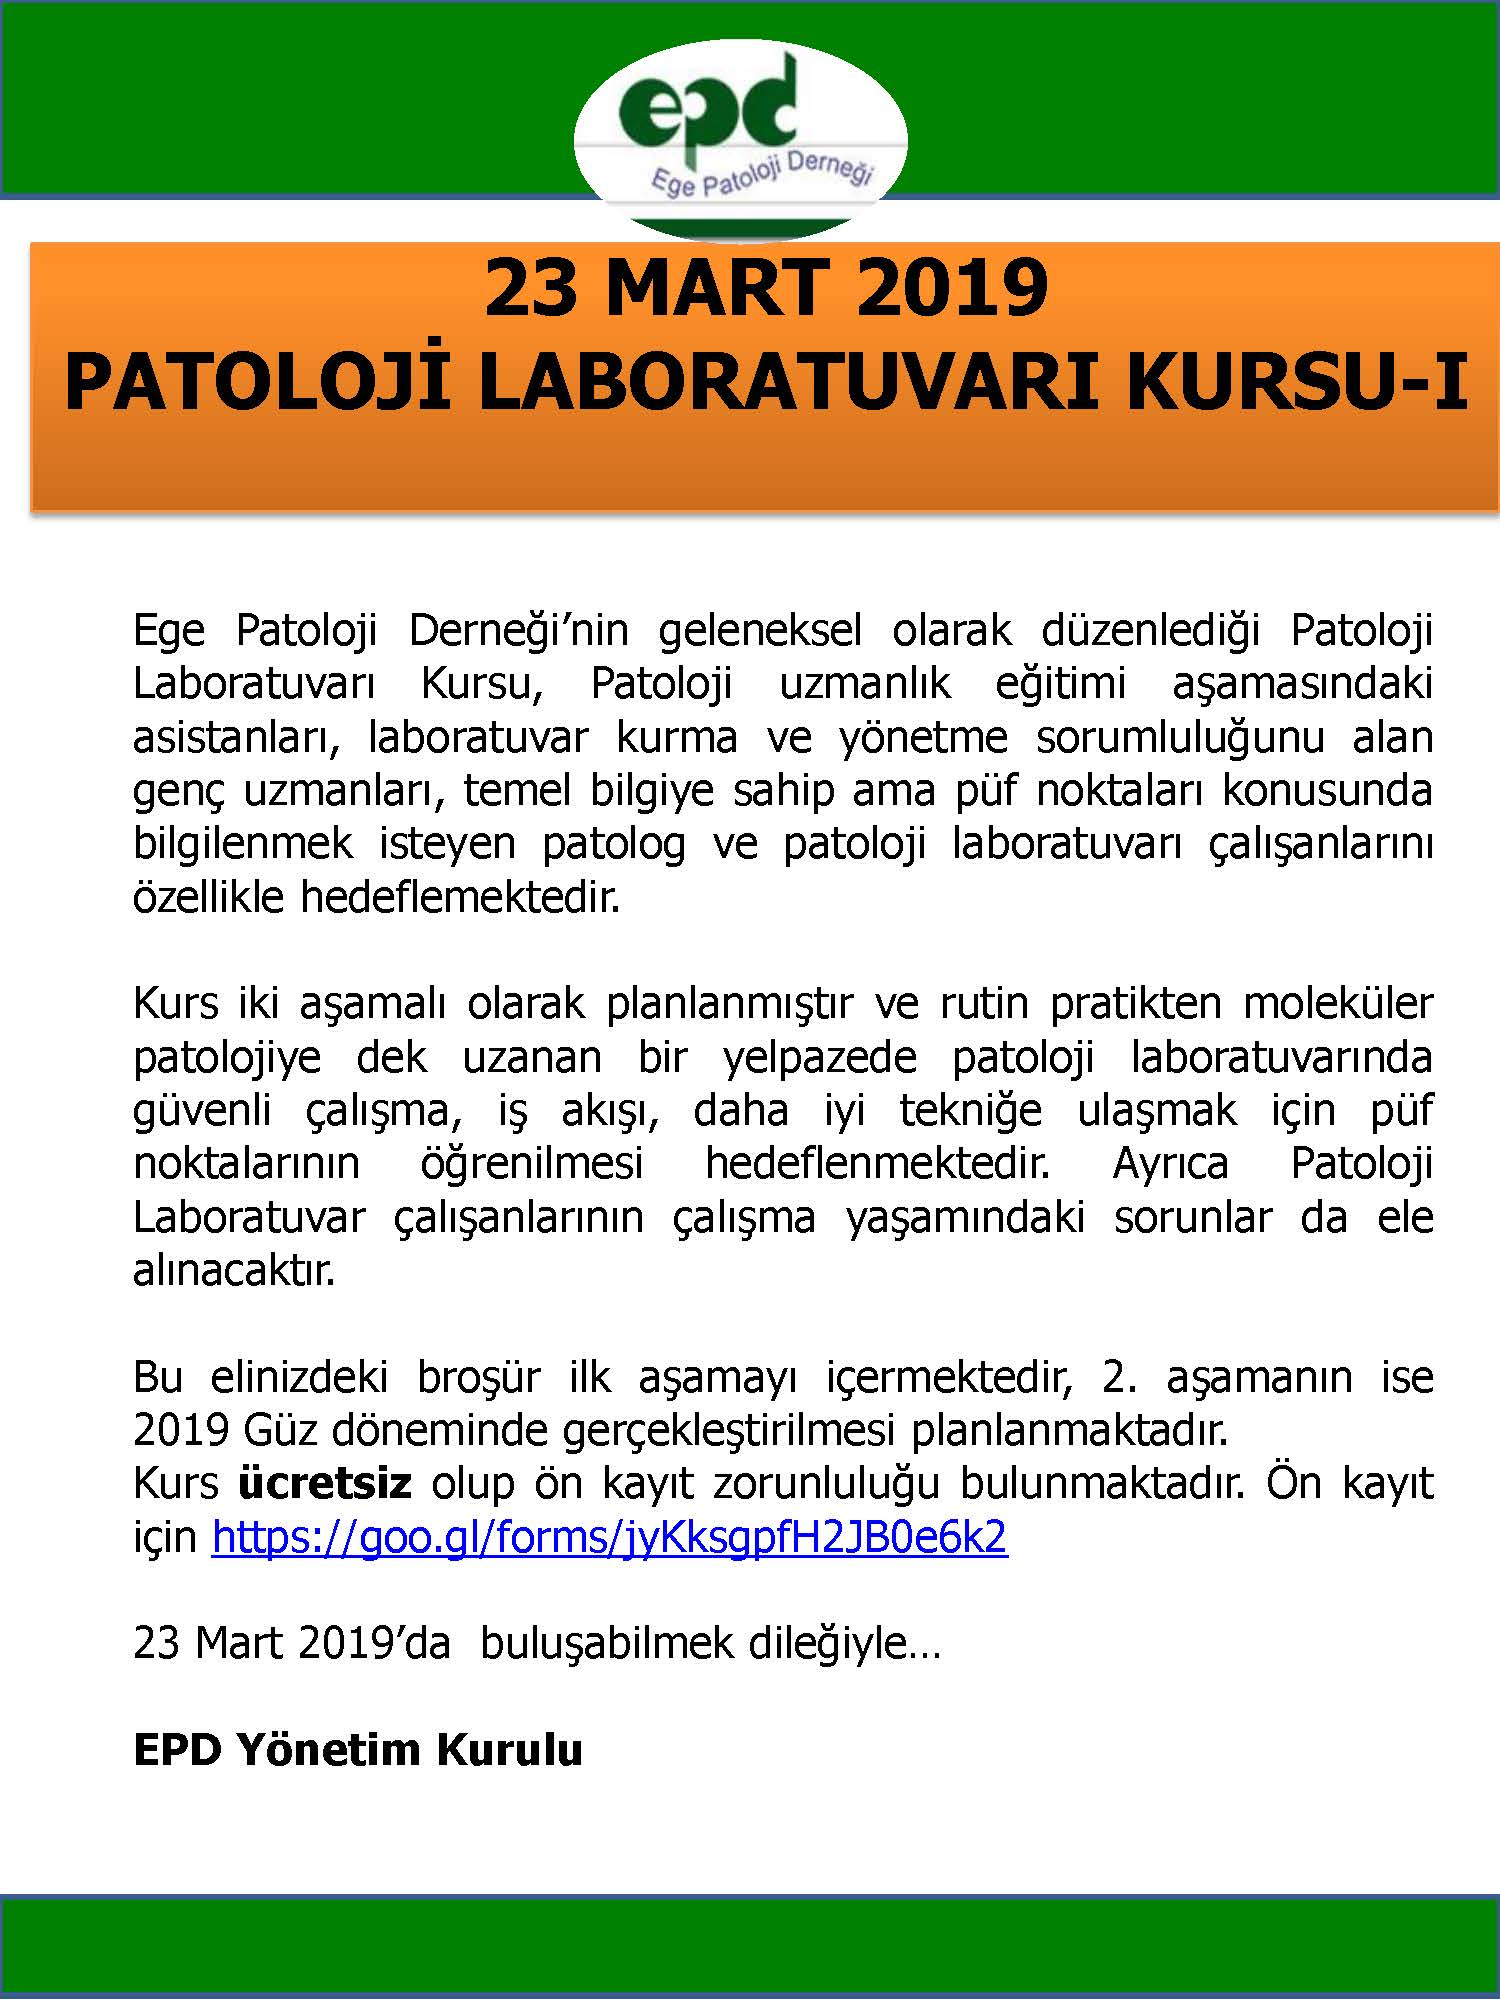 23 MART 2019 LAB KURSU PROGRAM_Page_2